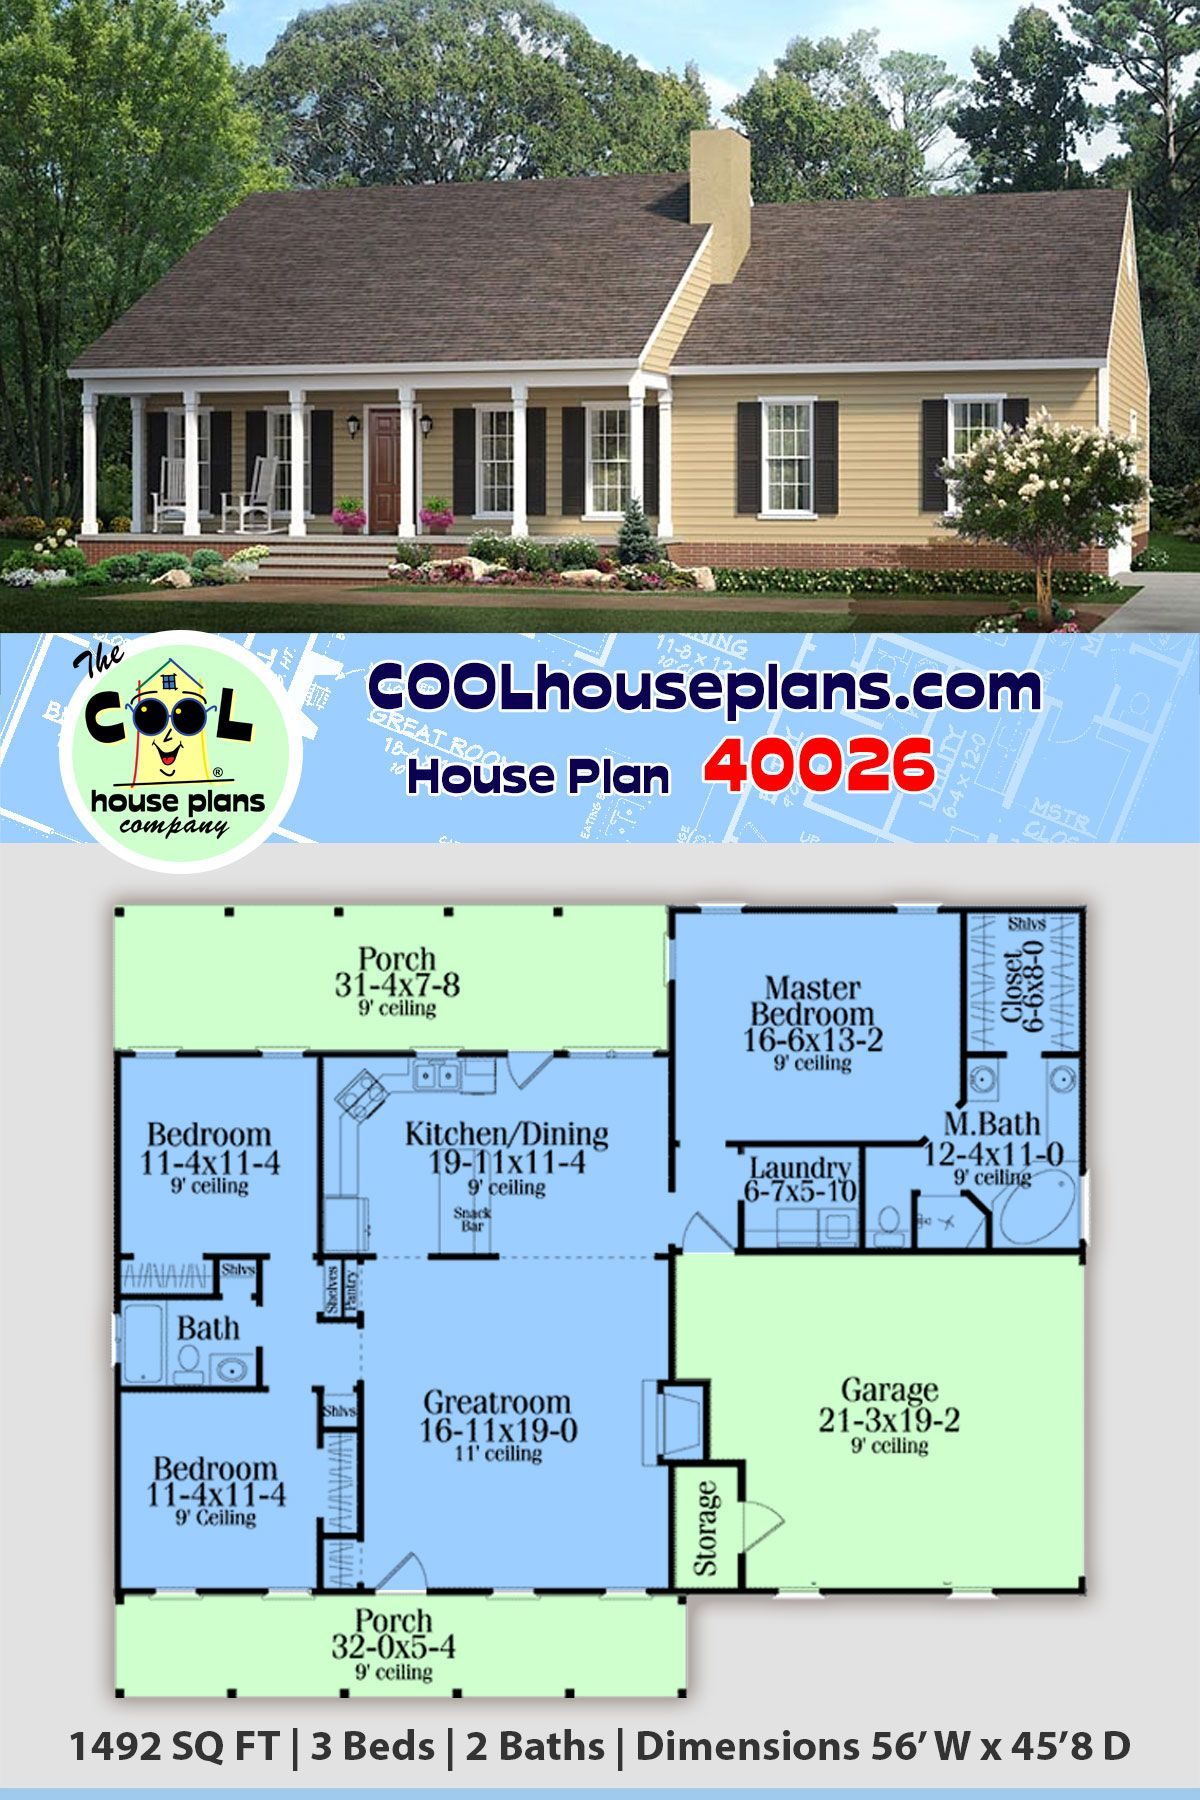 Ranch Style House Plan 40026 With 3 Bed 2 Bath 2 Car Garage In 2020 Affordable House Plans House Plans Ranch House Designs